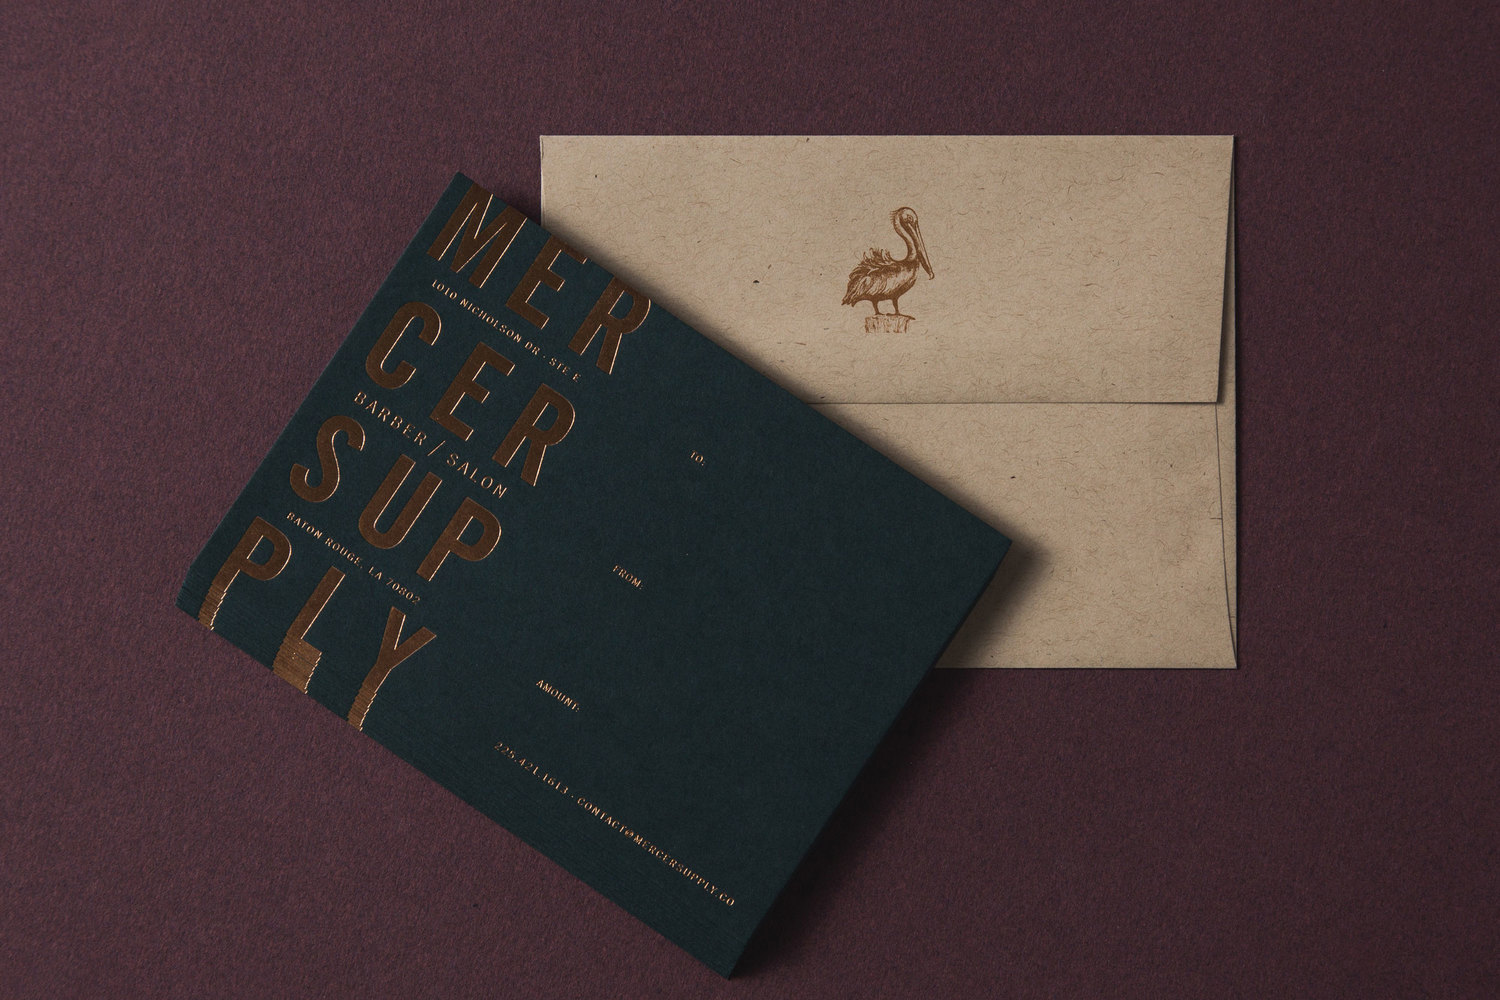 Brand identity, envelope and copper foiled notecard for salon and barber Mercer Supply Co. designed by Peck & Co.